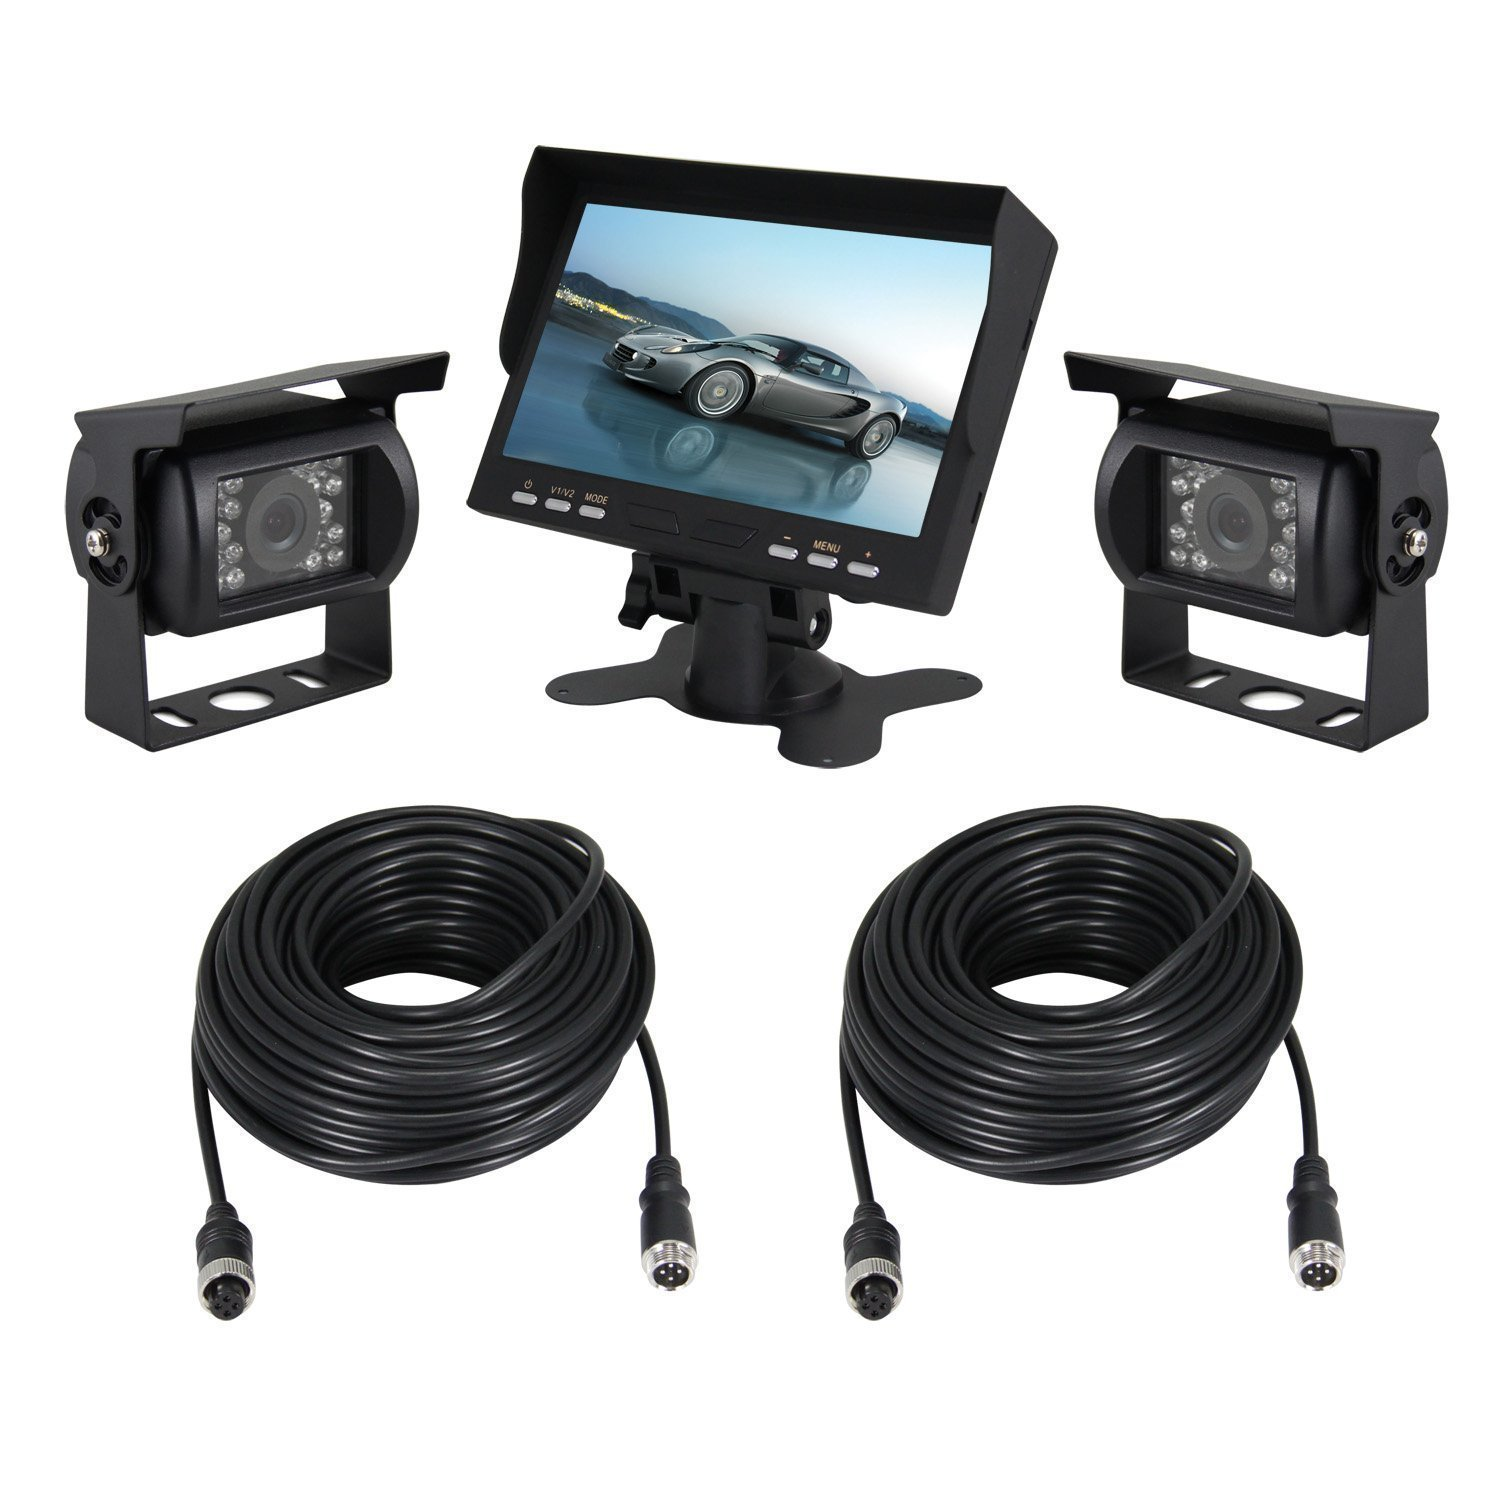 Esky 7-Inch TFT LCD Color Monitor Car Backup Rear View Camera System (Night Vision, Side Camera)